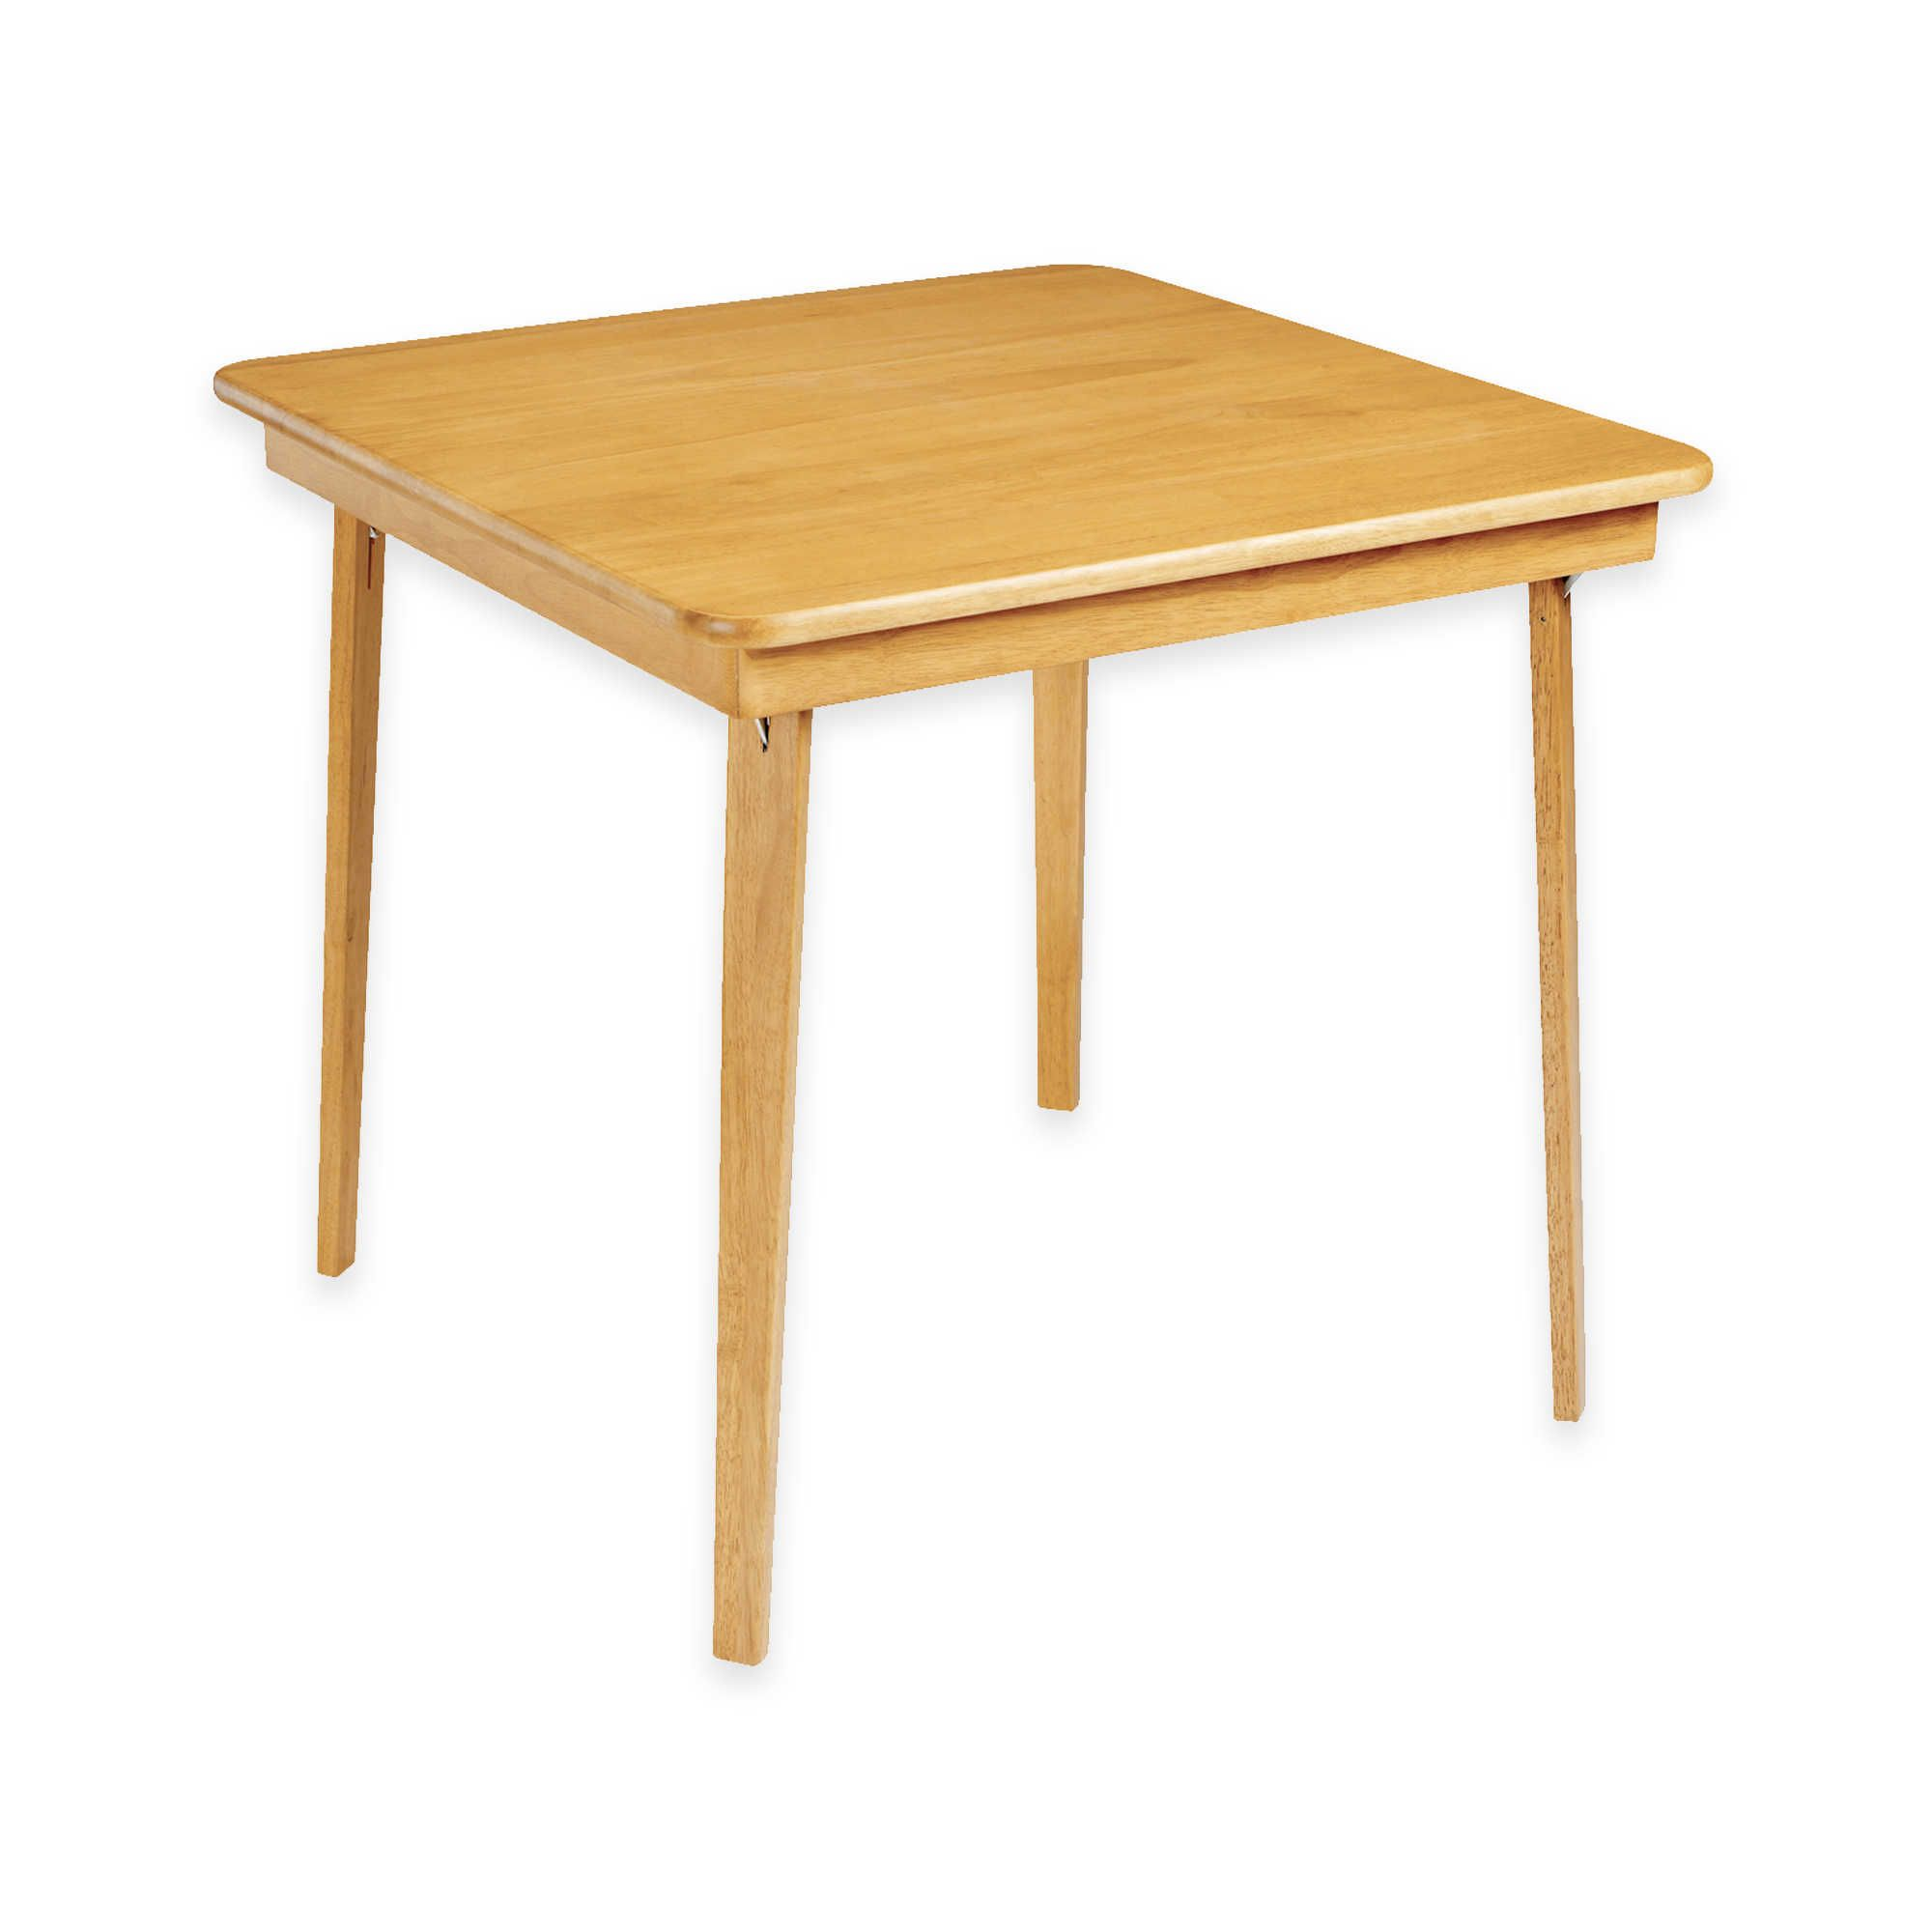 Stakmore 32 Inch Straight Edge Folding Card Table Wood Folding